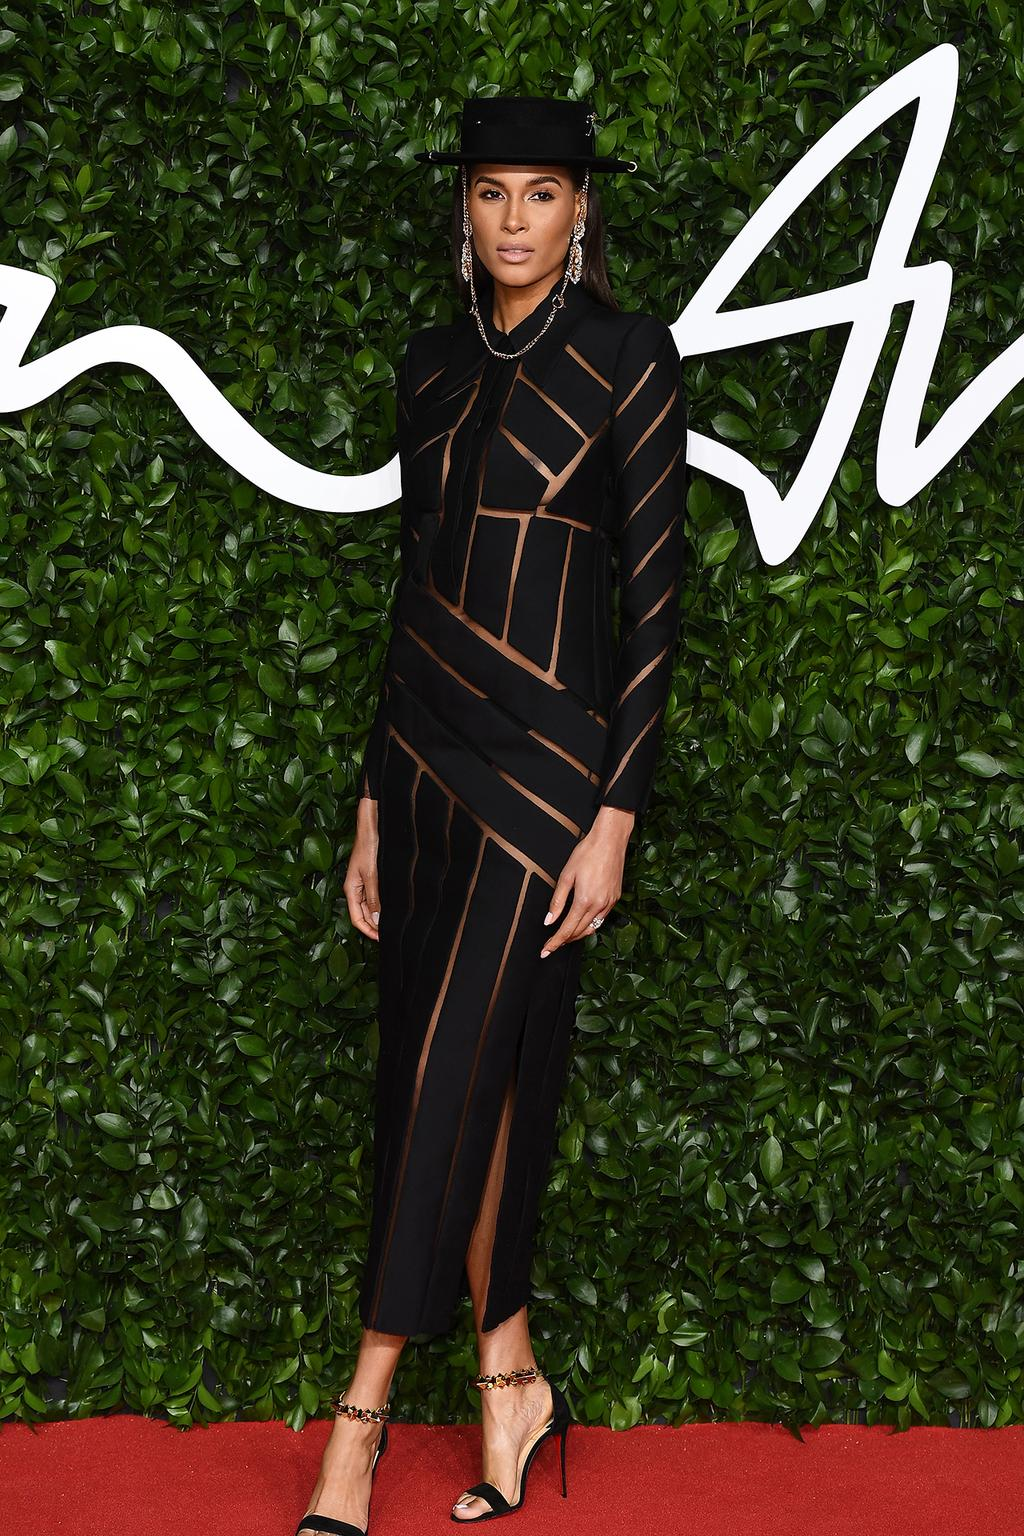 cindy-bruna-in-fendi-2019-british-fashion-council-awards